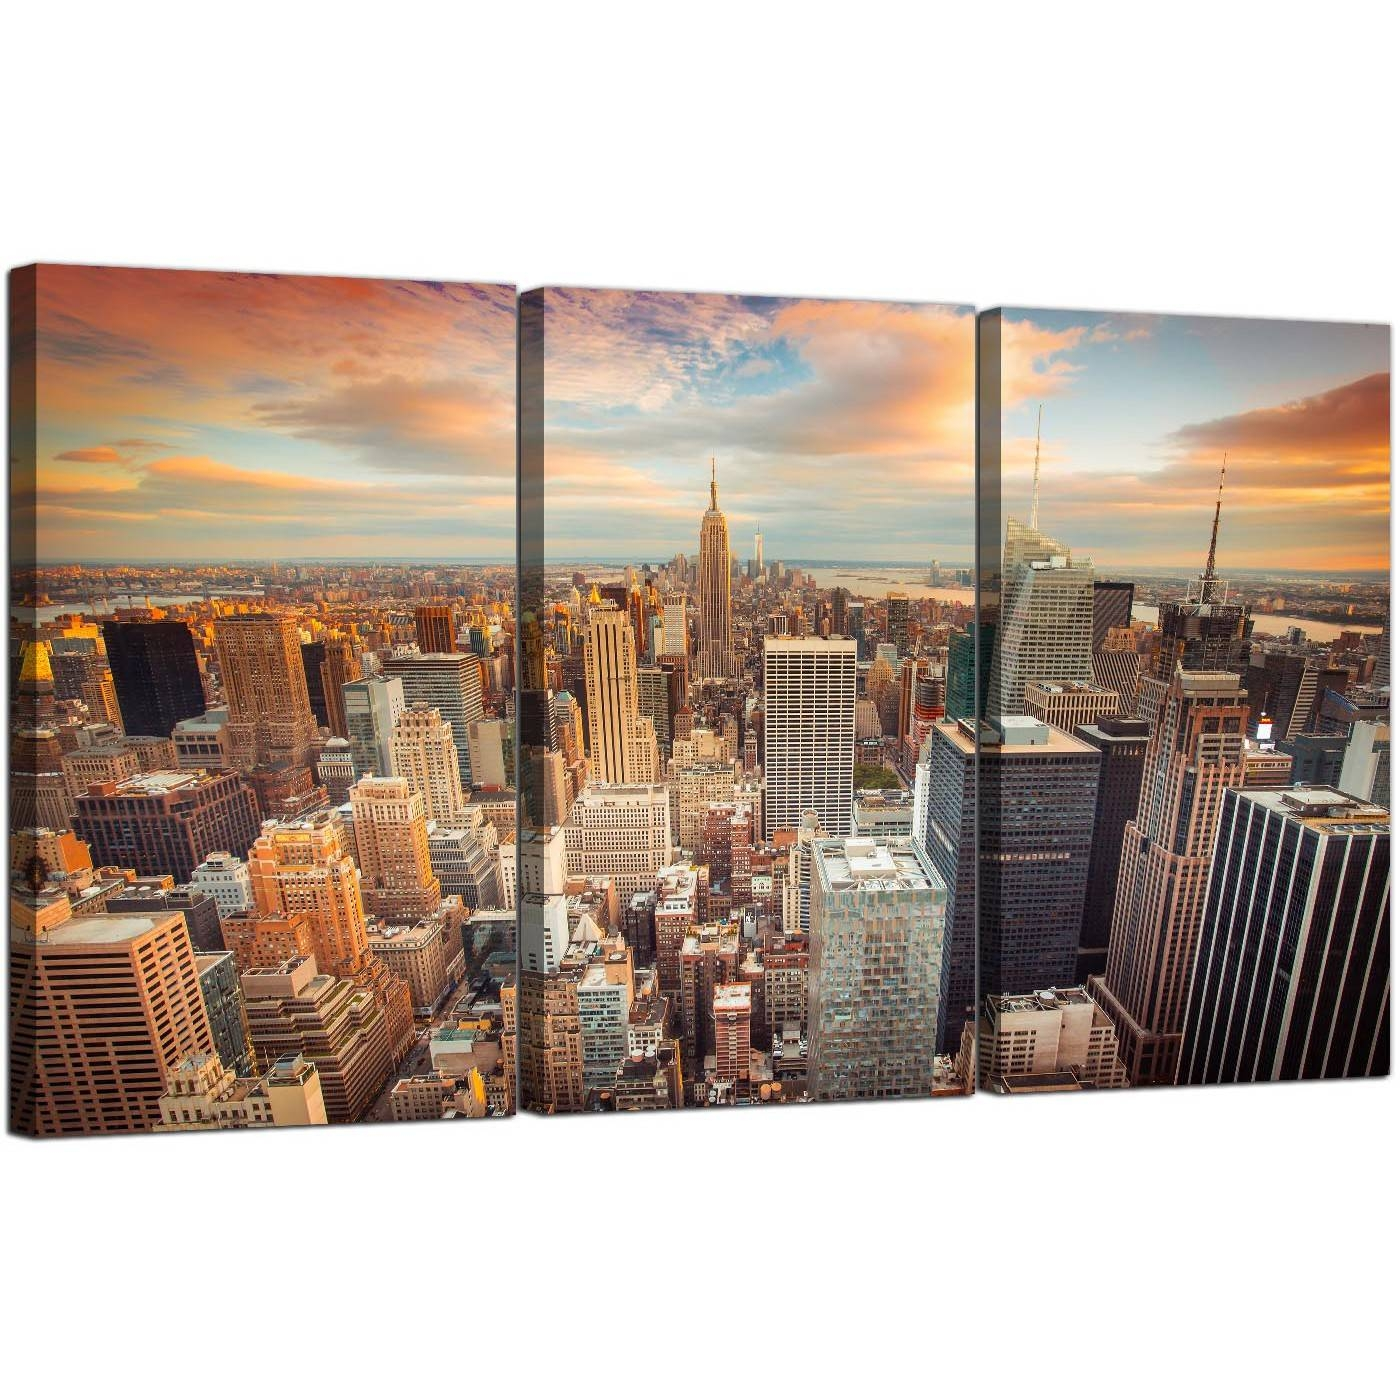 Cheap New York Skyline Canvas Wall Art 3 Panel For Your Living Room With Regard To Recent New York City Canvas Wall Art (View 6 of 20)